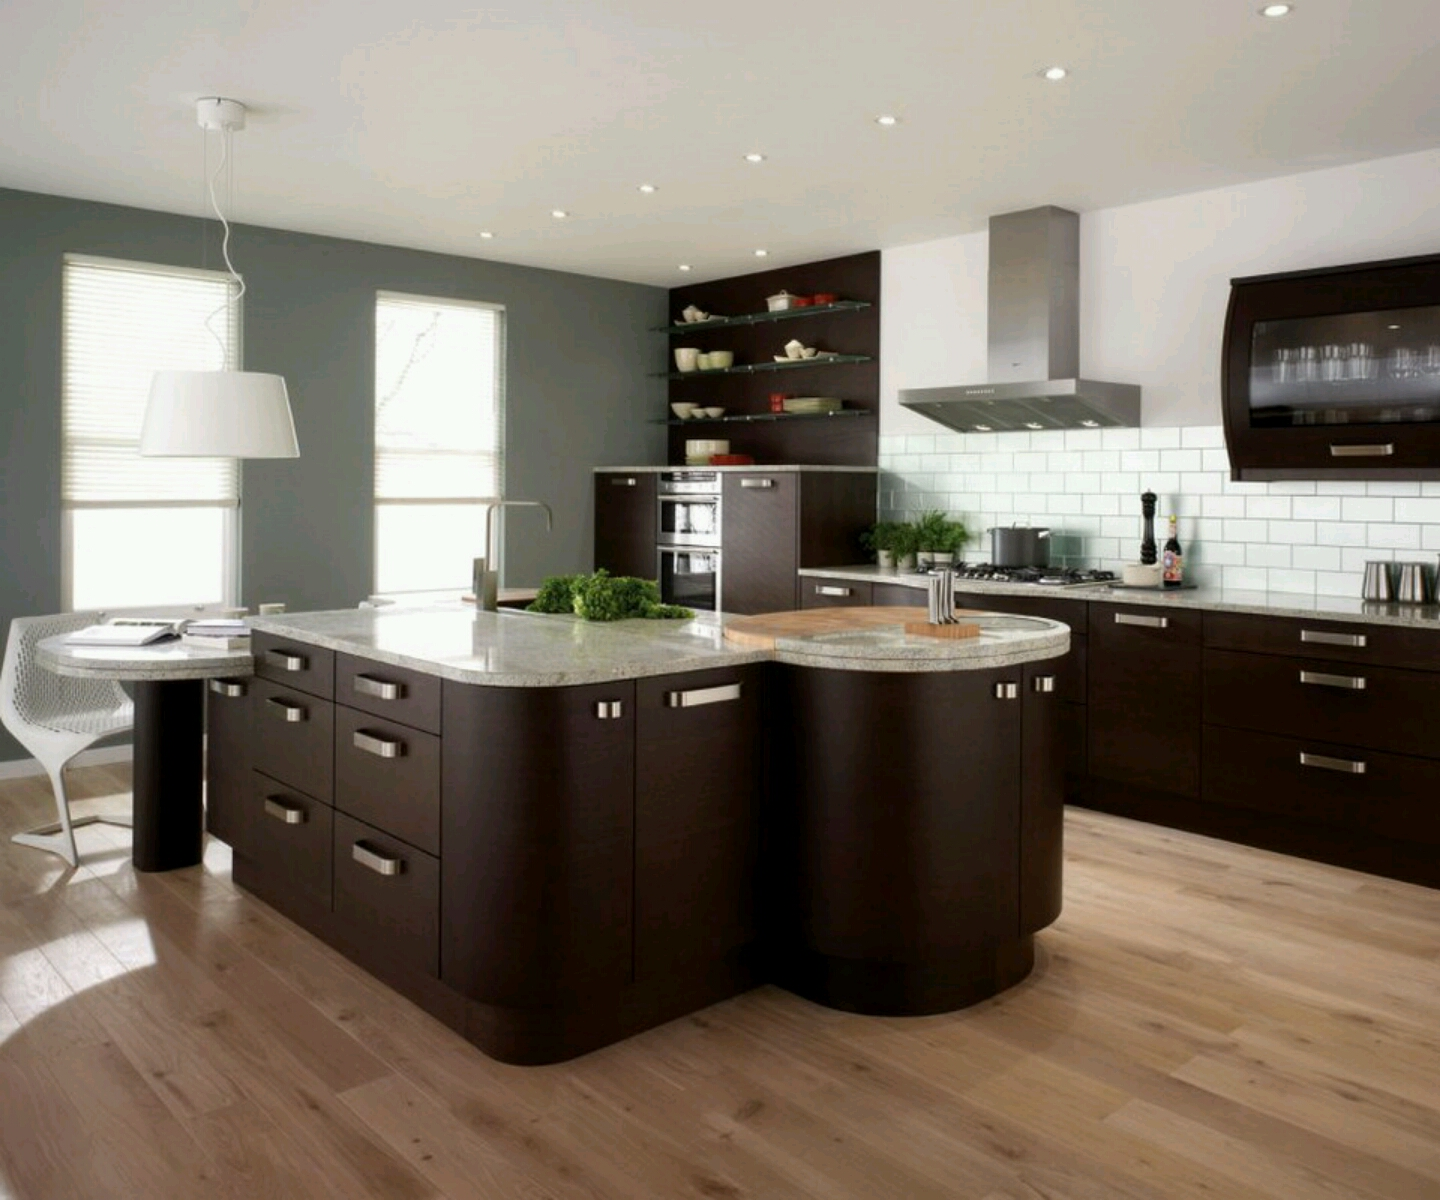 Modern Home Kitchen Cabinet Designs Ideas.